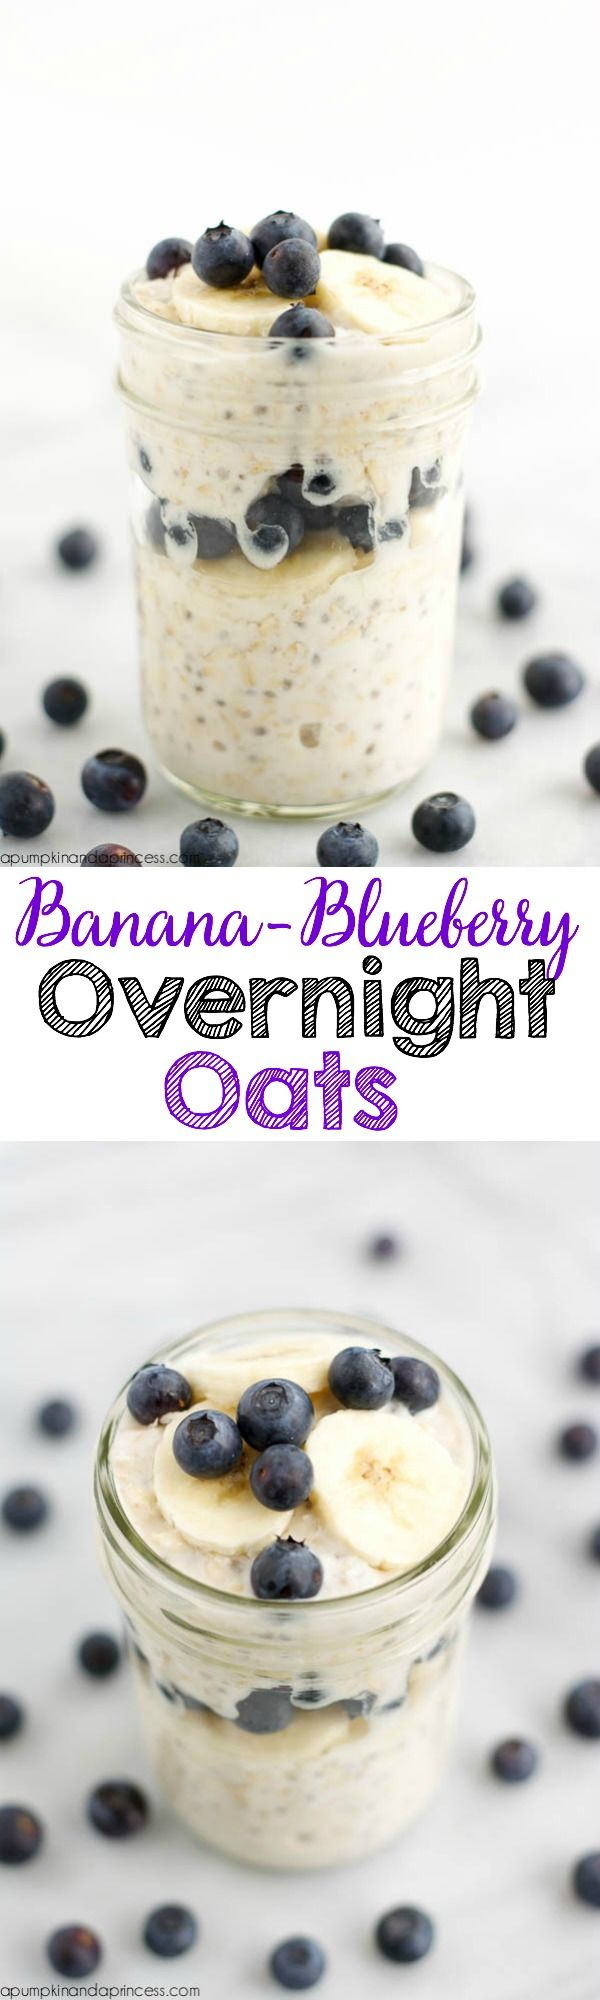 Banana-Blueberry Overnight Oats